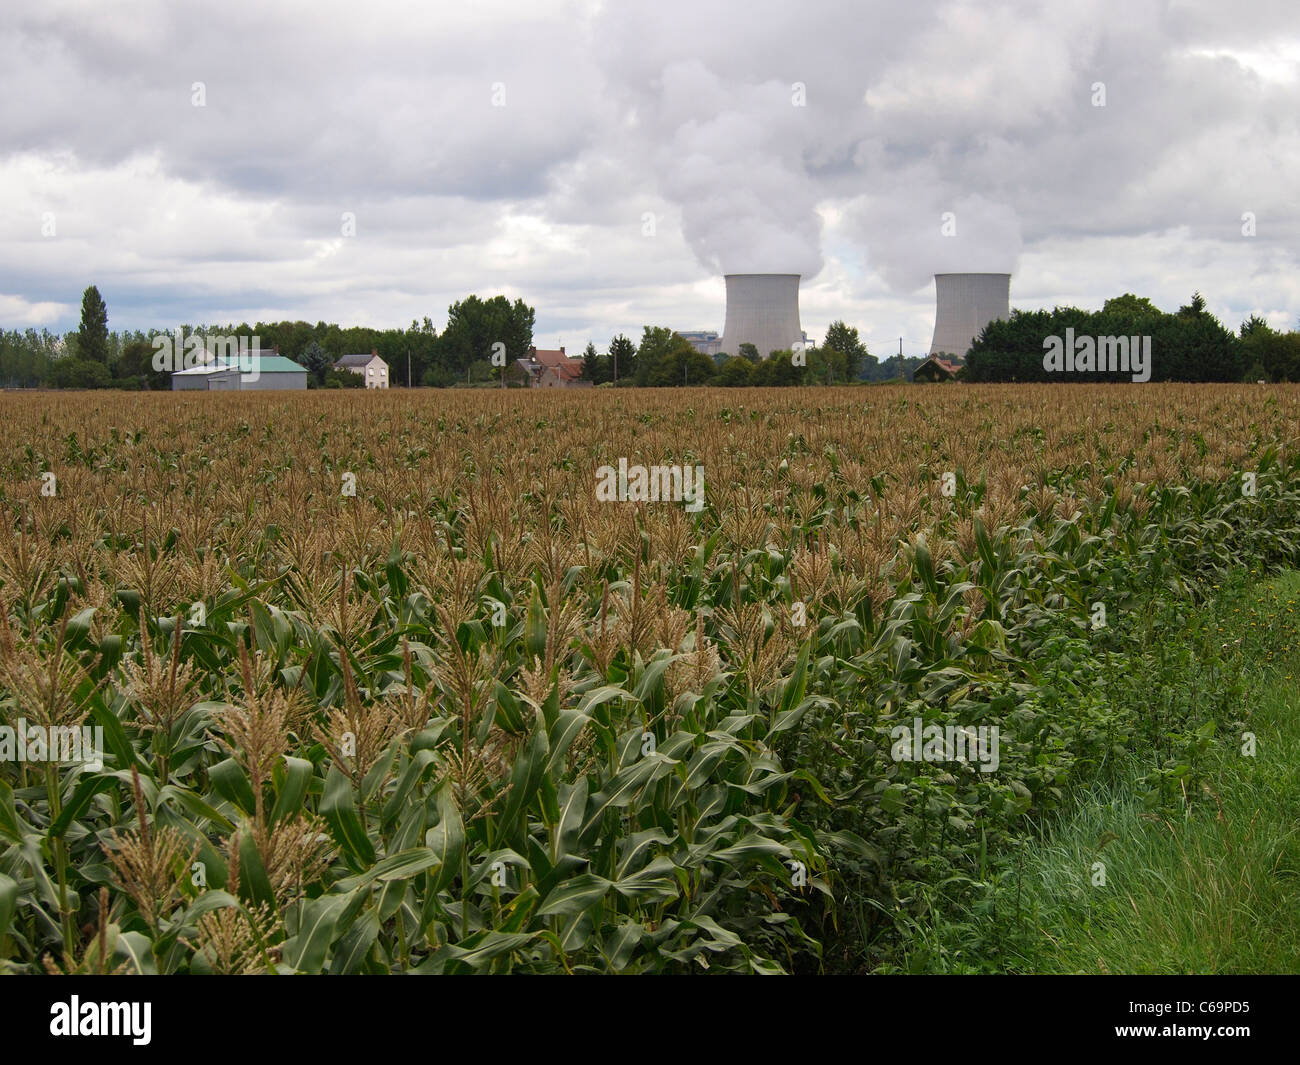 Along the Loire river there are many nuclear power stations. This one is in St. Laurent des Eaux, near Blois. France - Stock Image